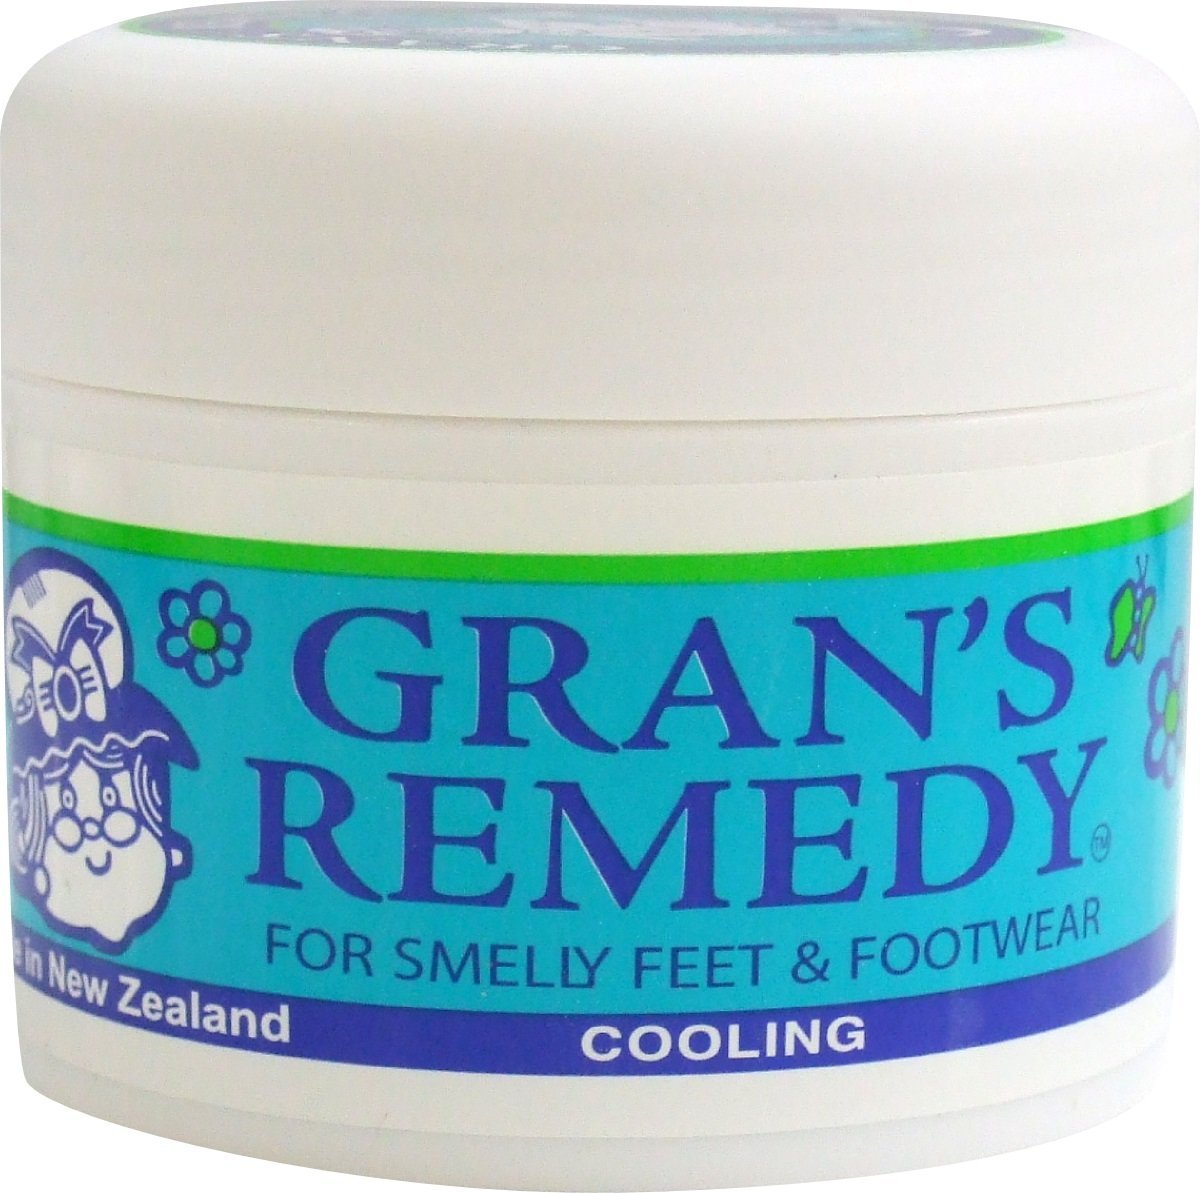 Foot Odor Eliminator for Smelly Feet & Footwear, Foot Care Powder Cause it Kills the Bacteria up to 6 Months, Freshens Better Than Spray Deodorant it Disinfects & Deodorizes Shoes & Boots by Gran's Re by Gran's Remedy.